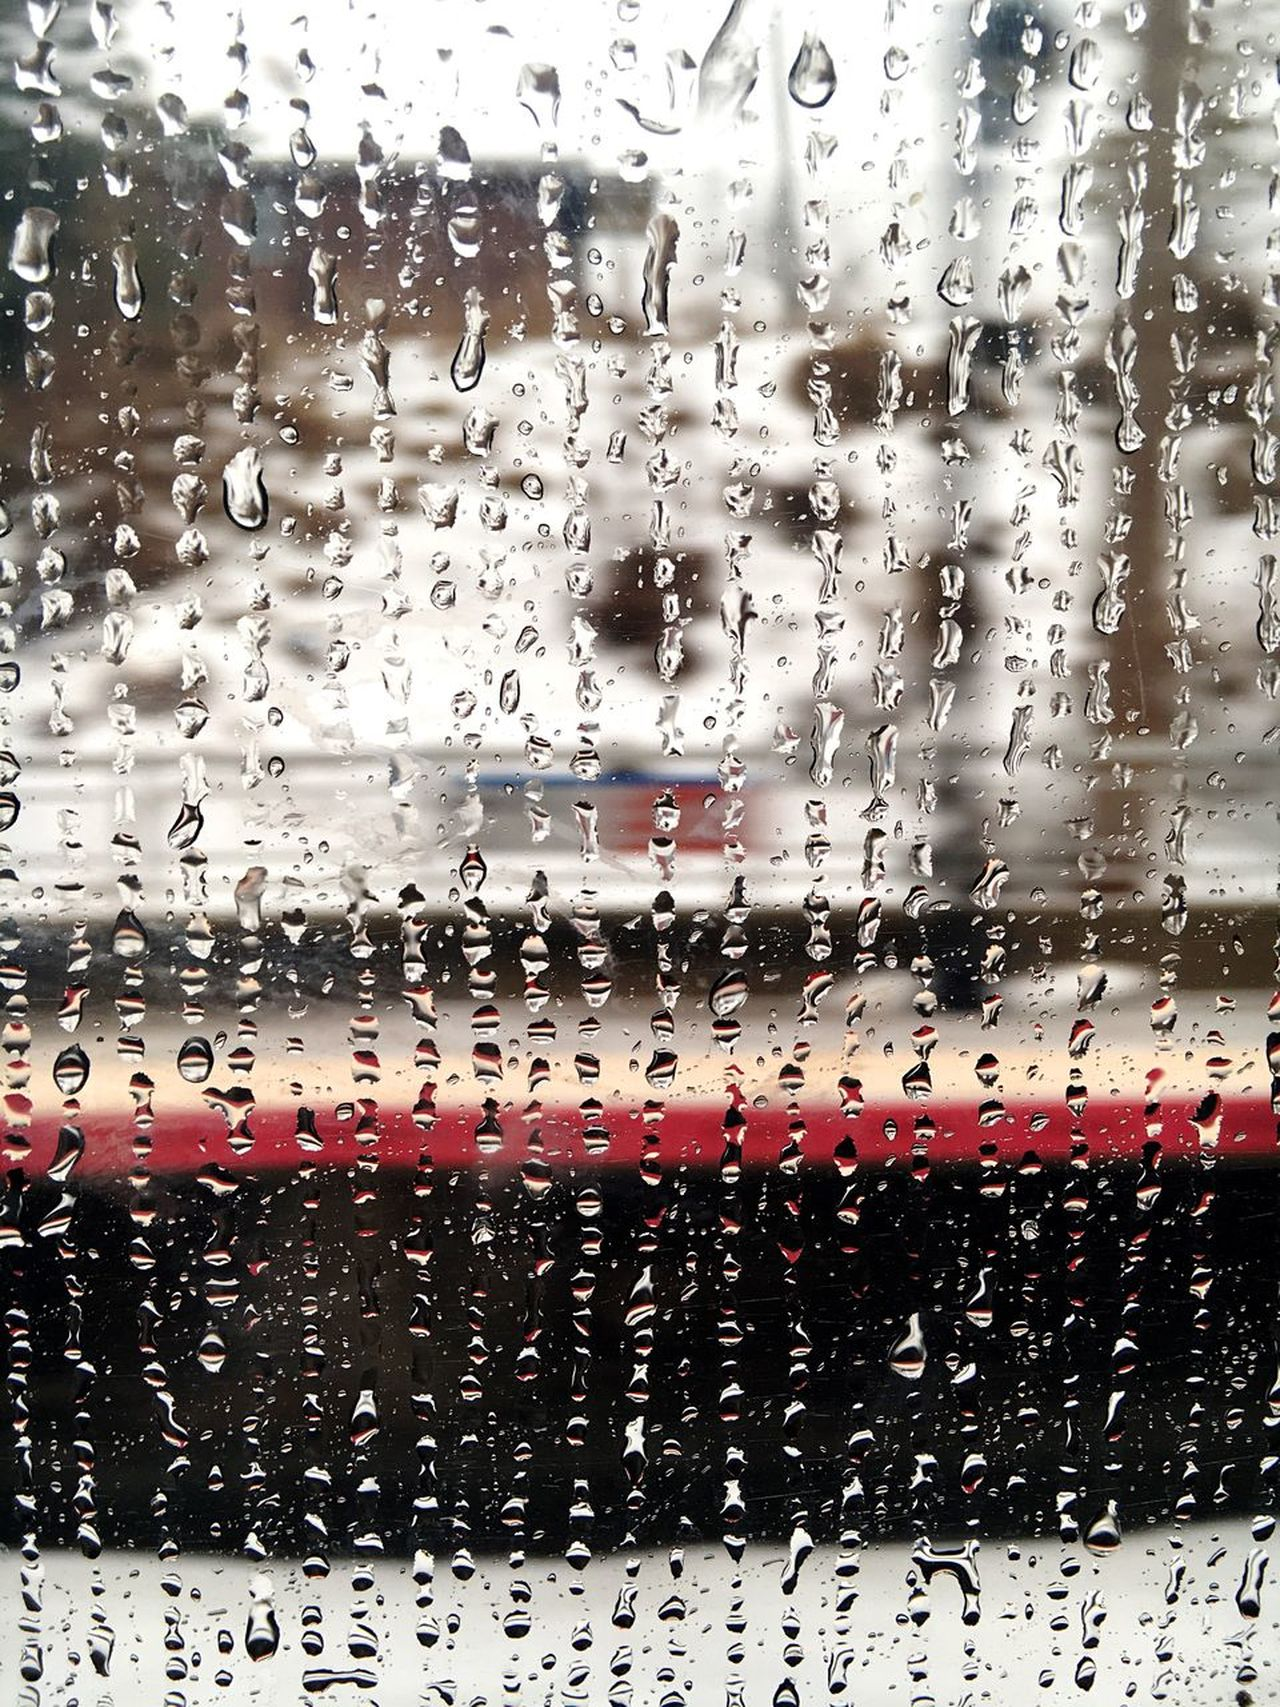 BYOPaper! Window Drop Glass - Material Transparent Wet Rain Water Full Frame Backgrounds Glass Transportation Mode Of Transport Weather Land Vehicle No People RainDrop Rainy Season Travel Indoors  Day Rainy Days